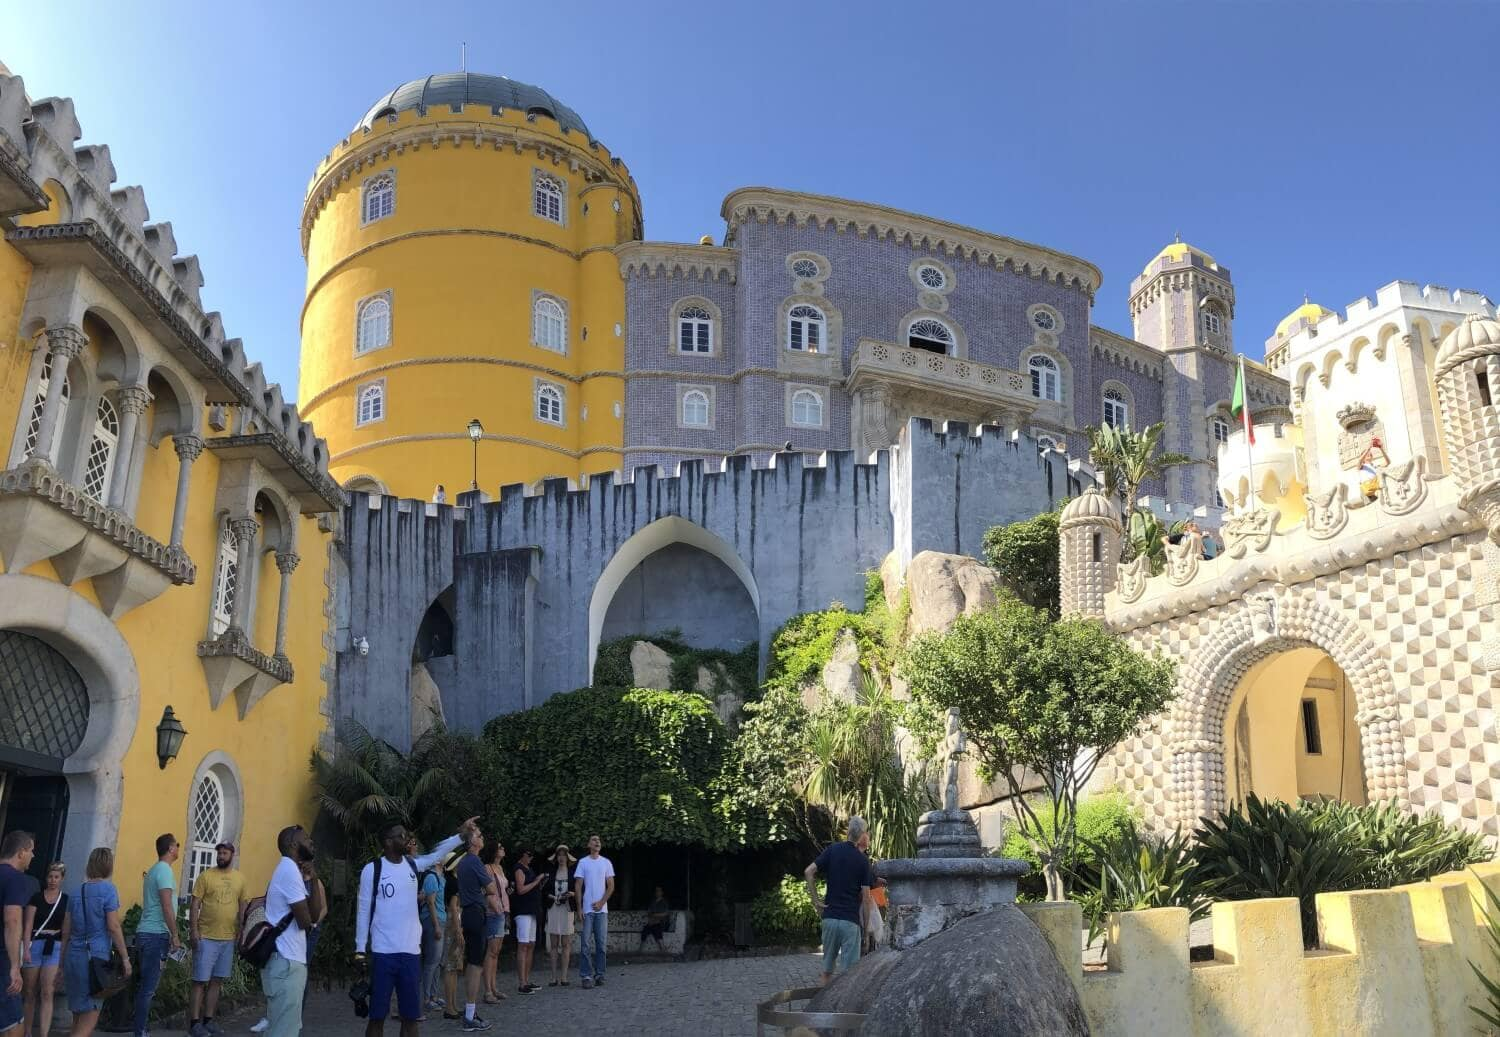 sintra castle pena palace visit during hubstaff retreat in portugal